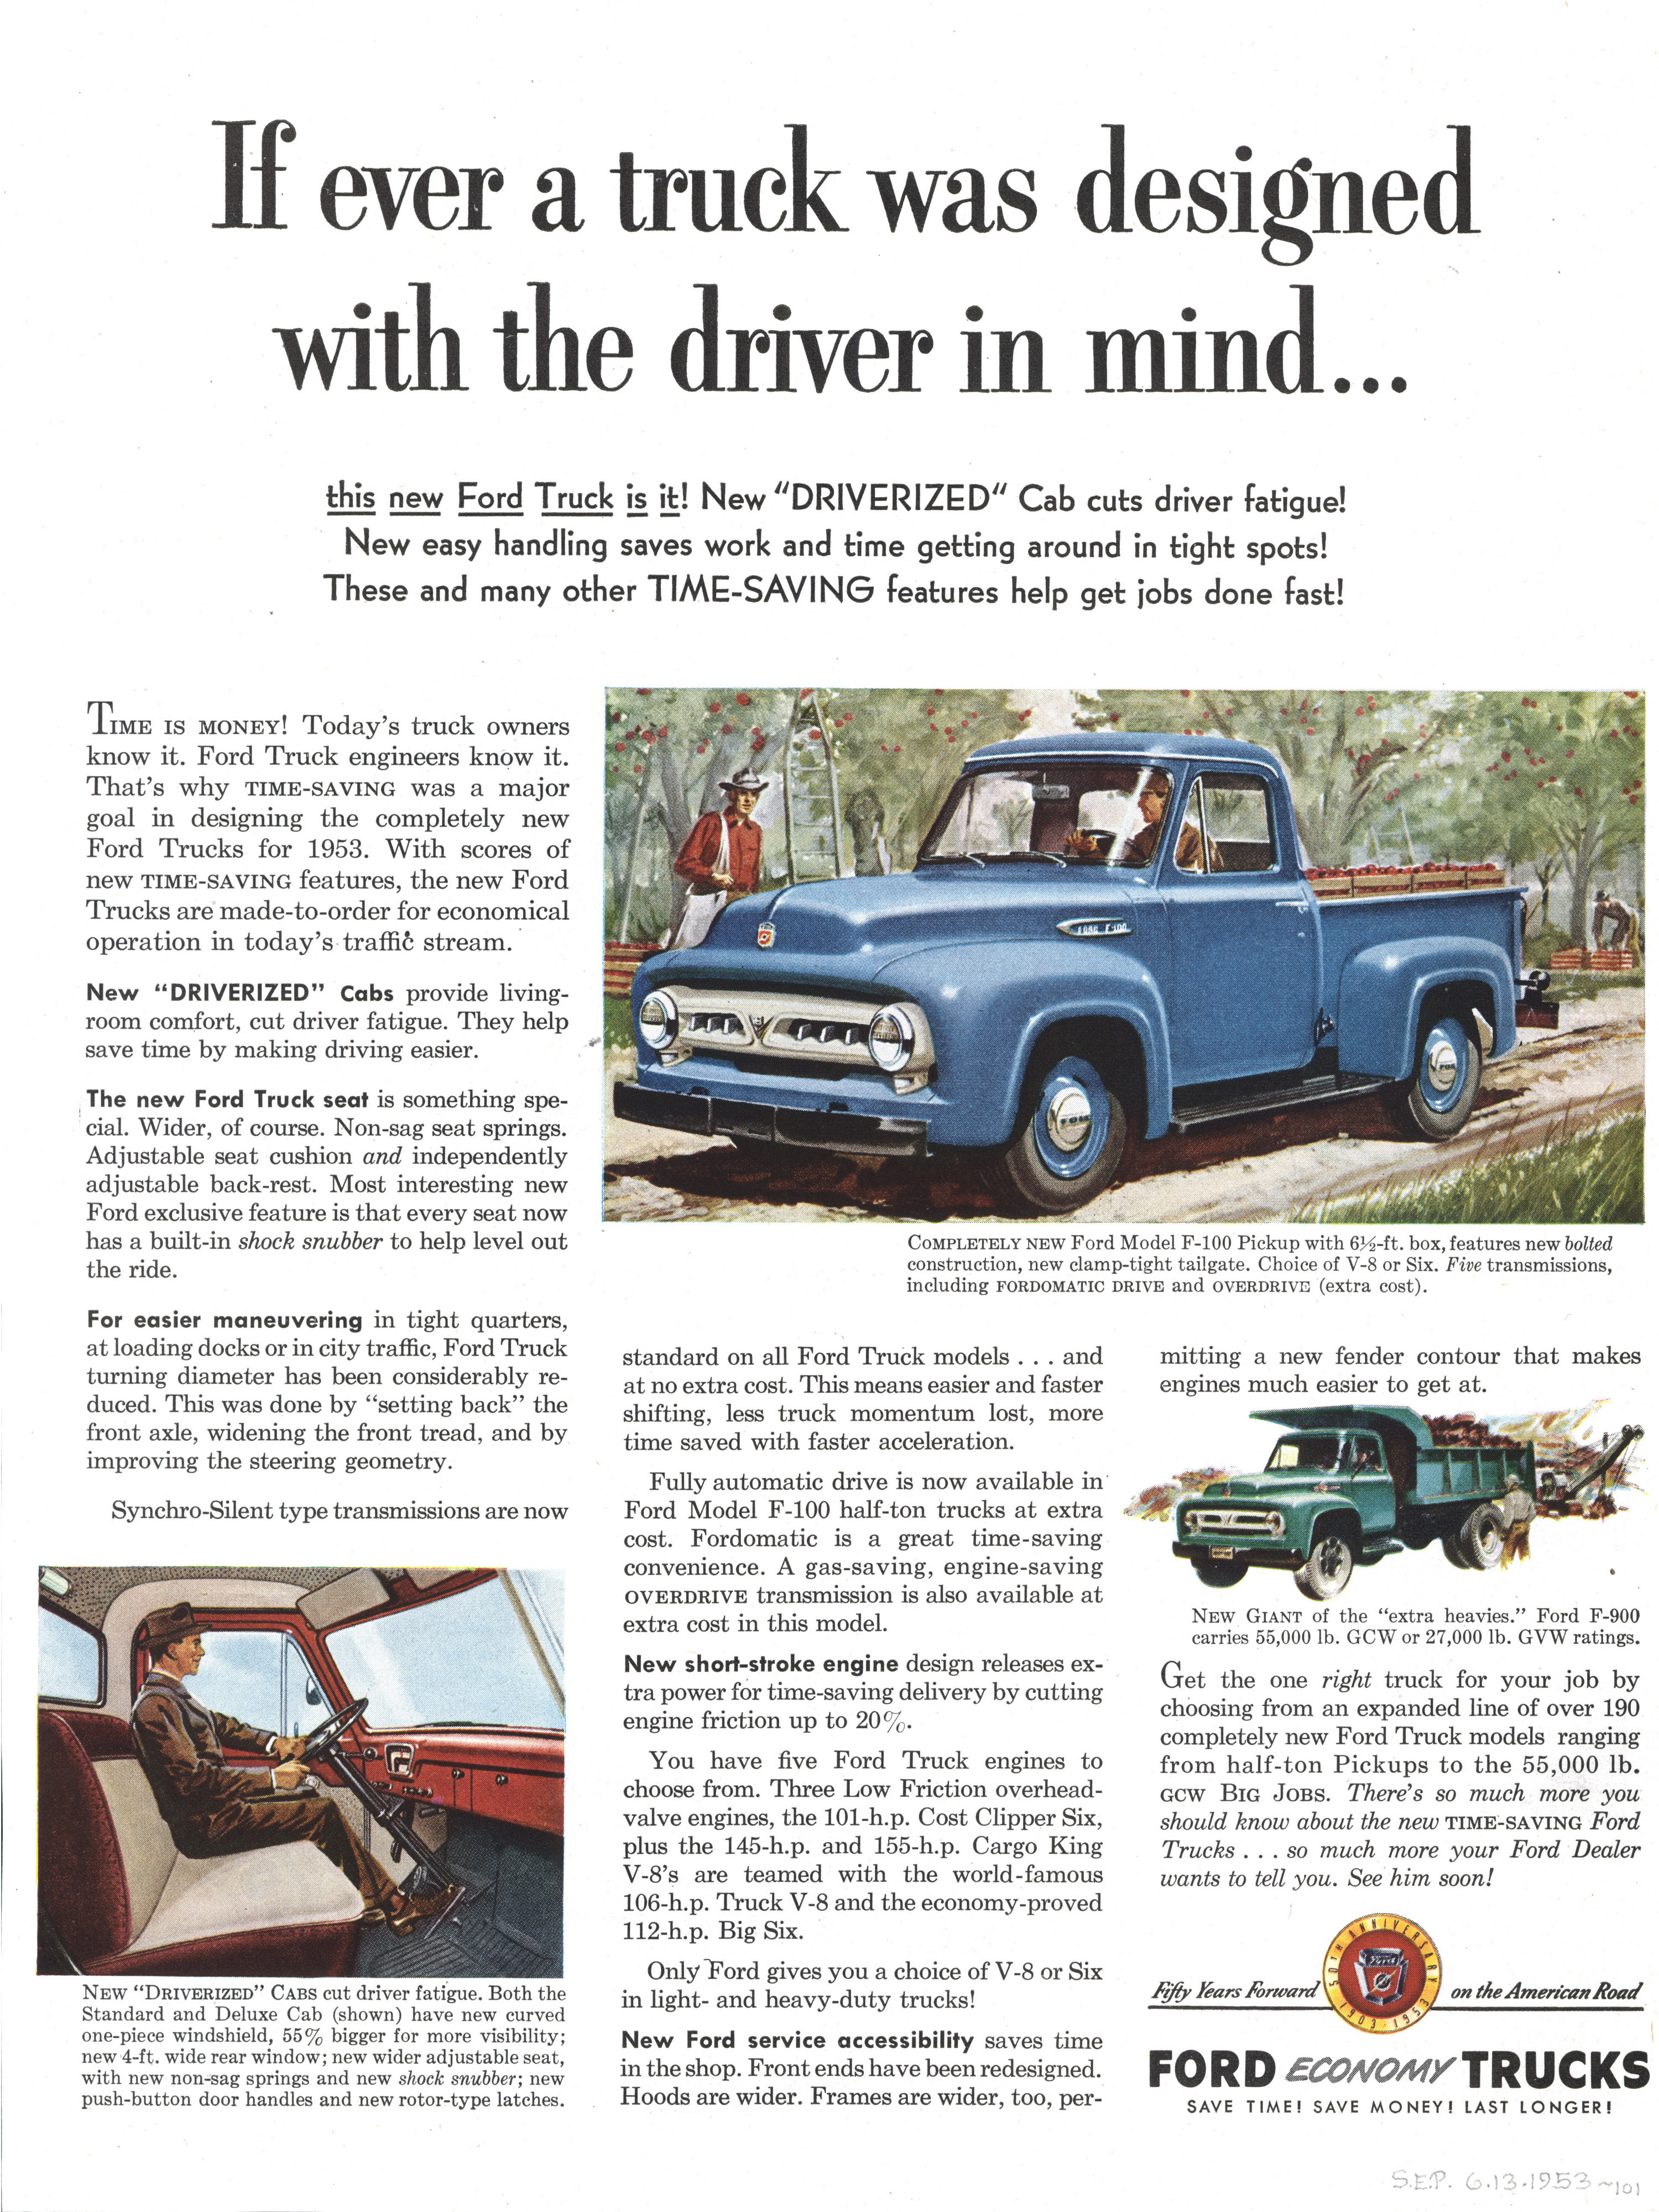 Ford f100 ad 53